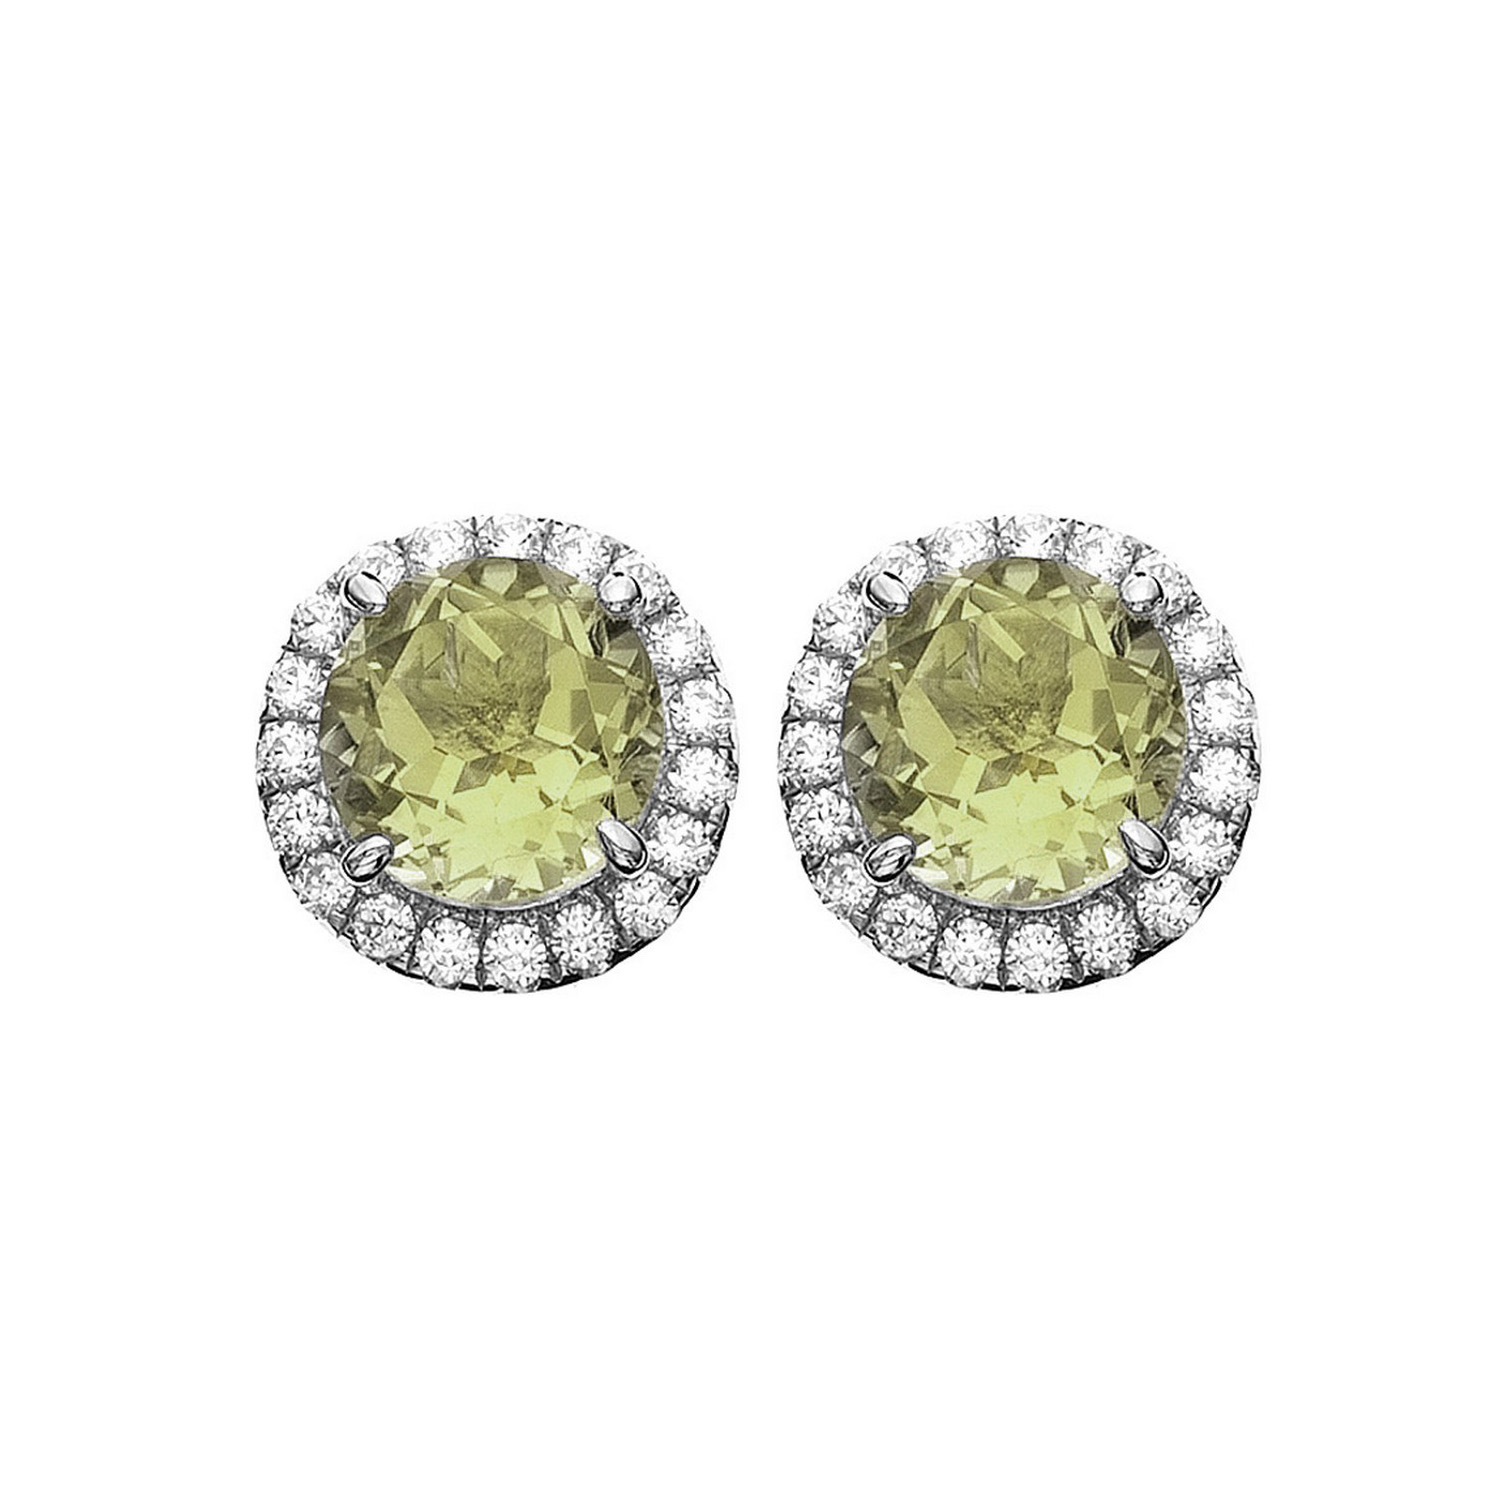 Platinum-Plated-Sterling-Silver-Round-Cut-Gemstone-Pave-CZ-Earring